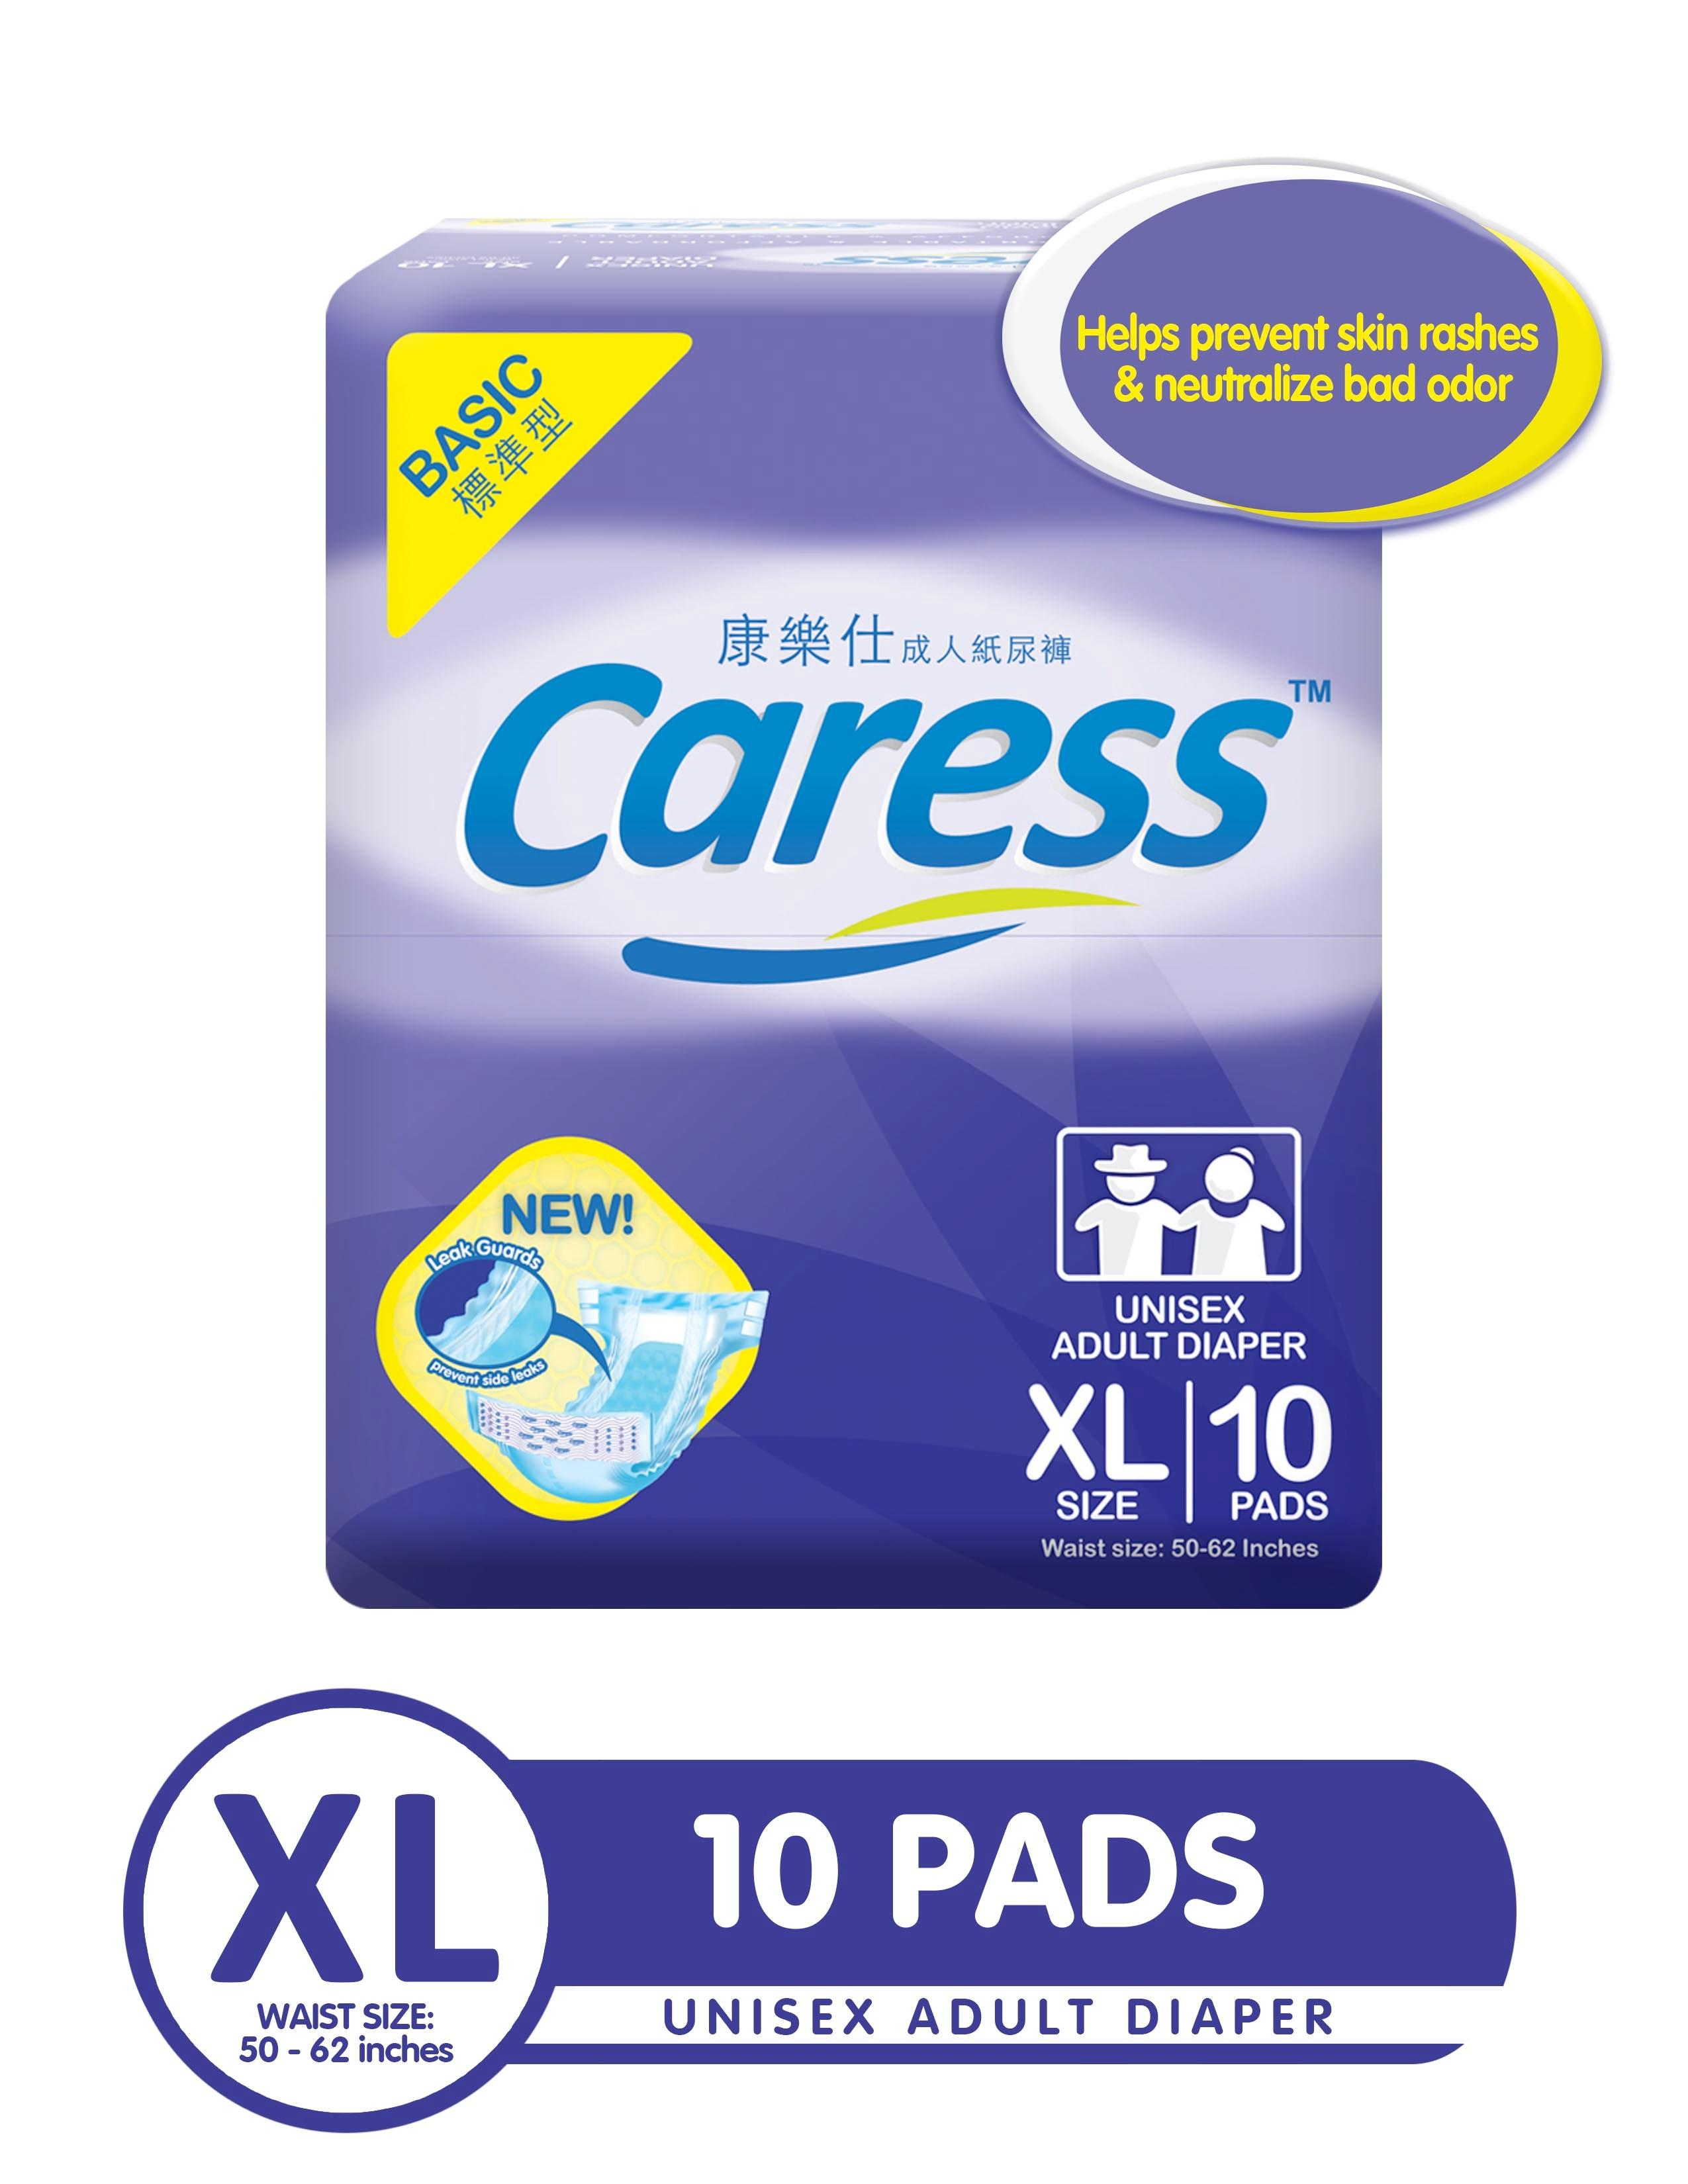 Caress Basic Adult Diaper XLarge: 1 pack of 10 pads